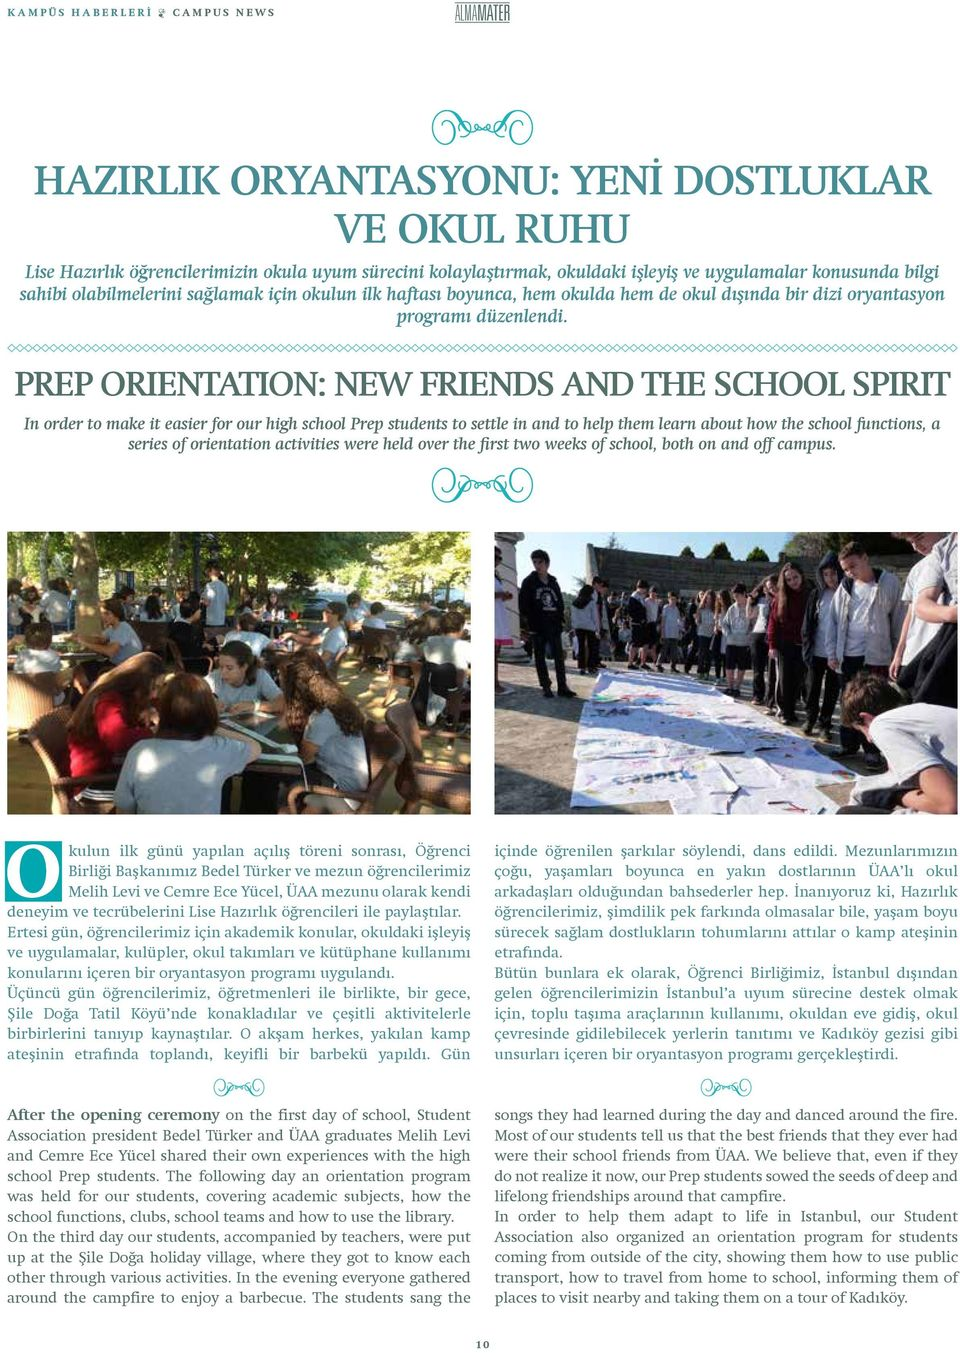 PREP ORIENTATION: NEW FRIENDS AND THE SCHOOL SPIRIT In order to make it easier for our high school Prep students to settle in and to help them learn about how the school functions, a series of